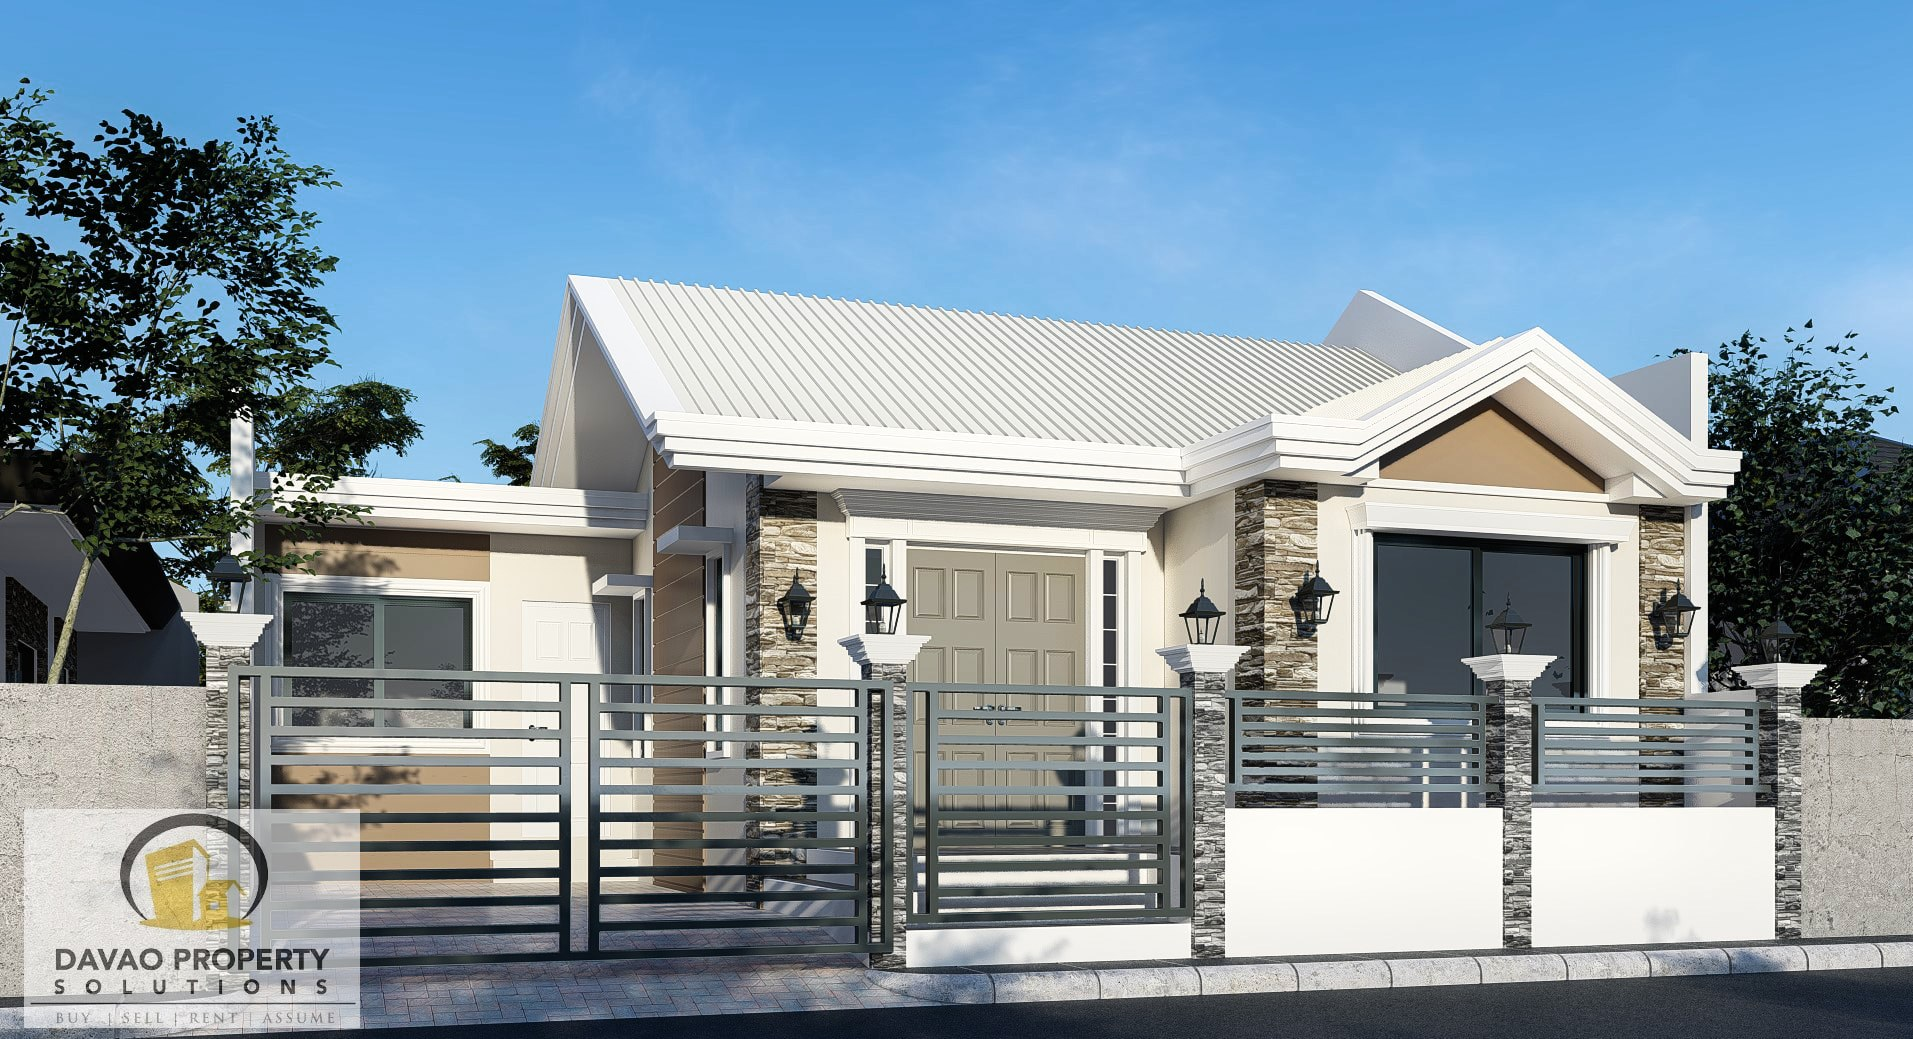 Soon! Another unit for Assume in Deca Homes Indangan, Buhang...